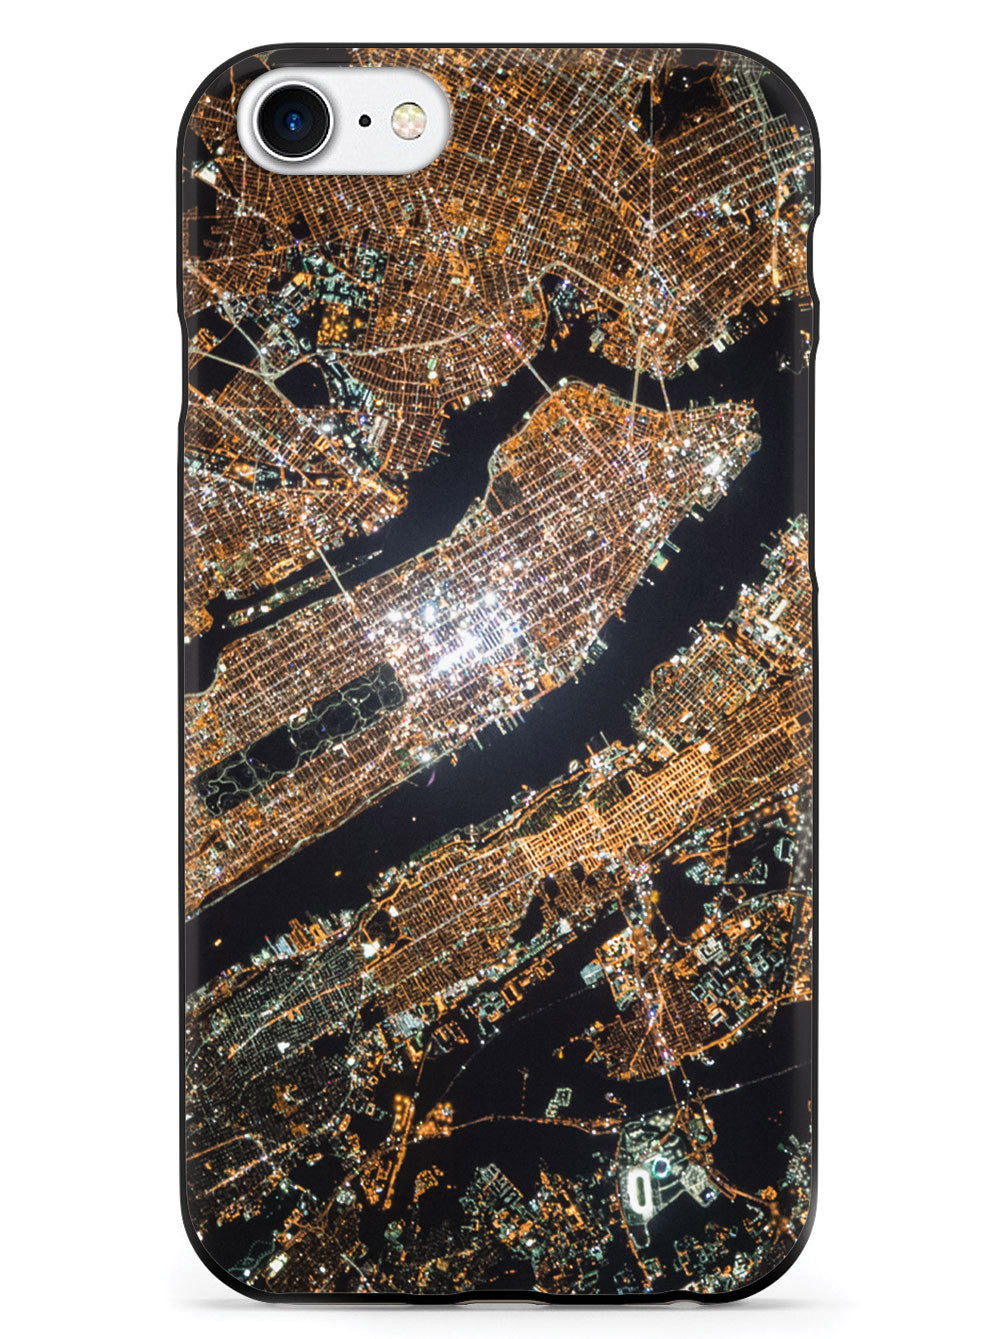 New York at Night from Space Case